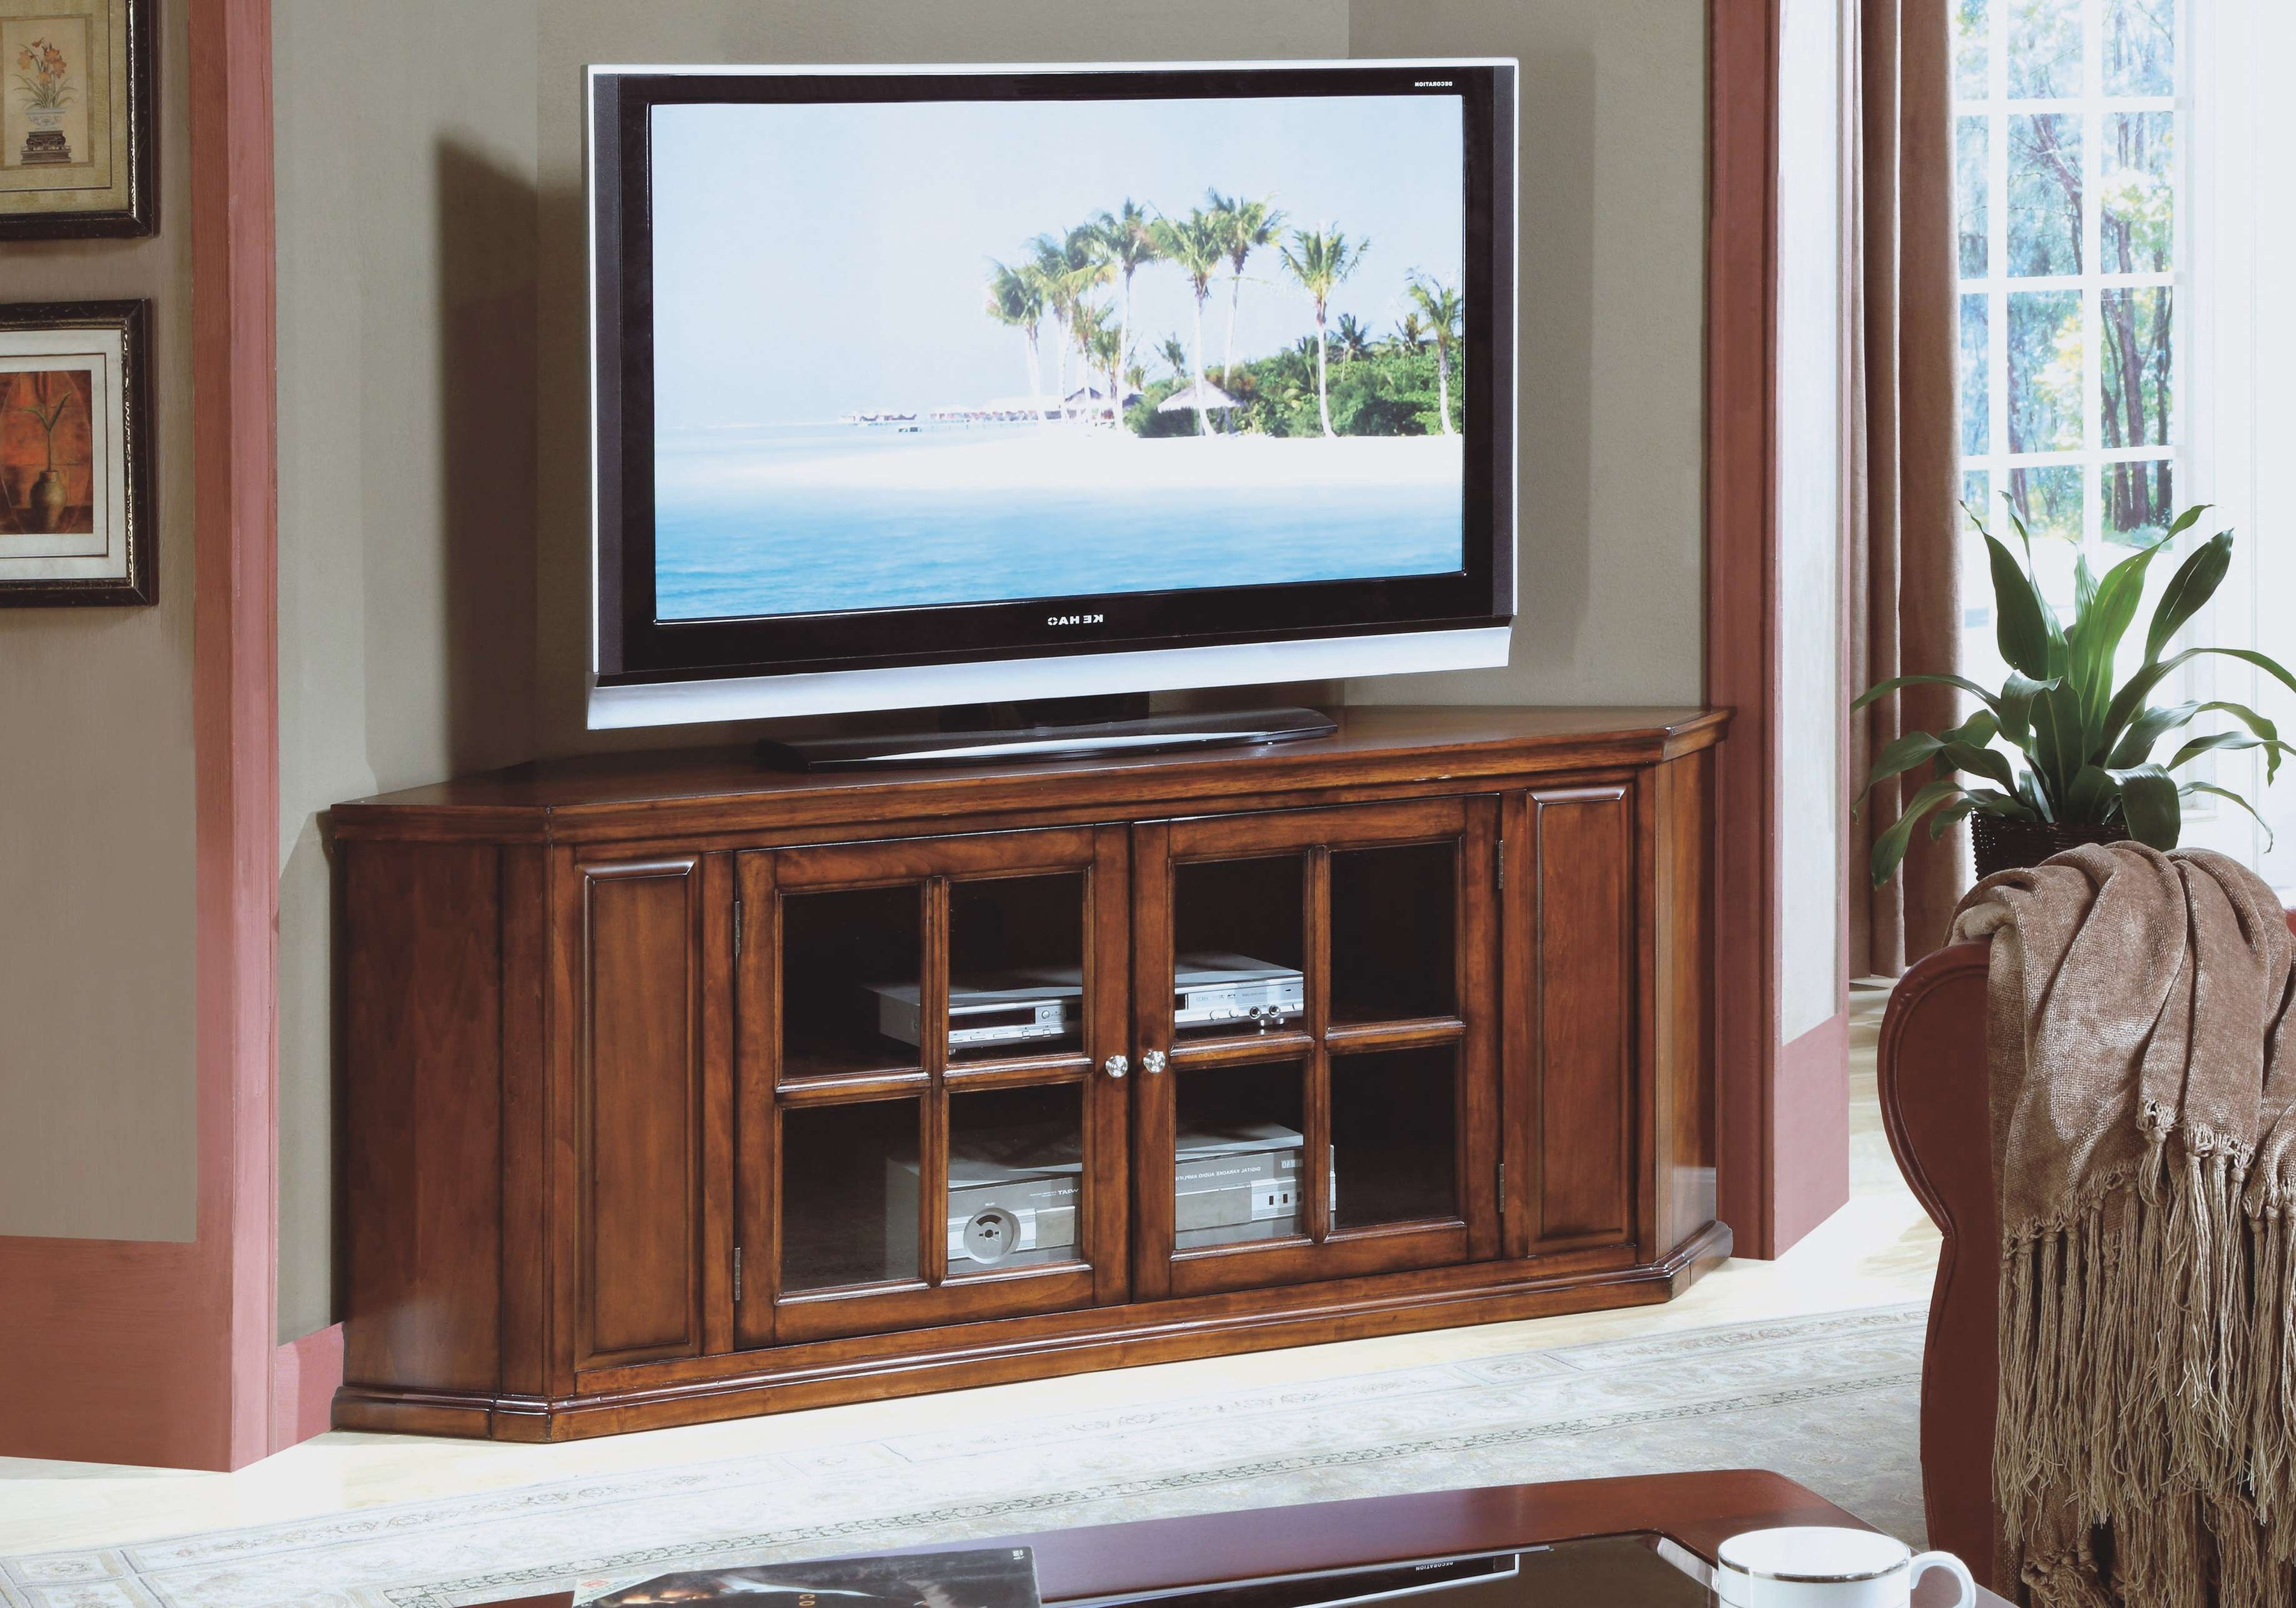 30 Stupendous White Wood Tv Stand Cabinet Picture Design Tampa Throughout Cherry Wood Tv Cabinets (View 1 of 20)